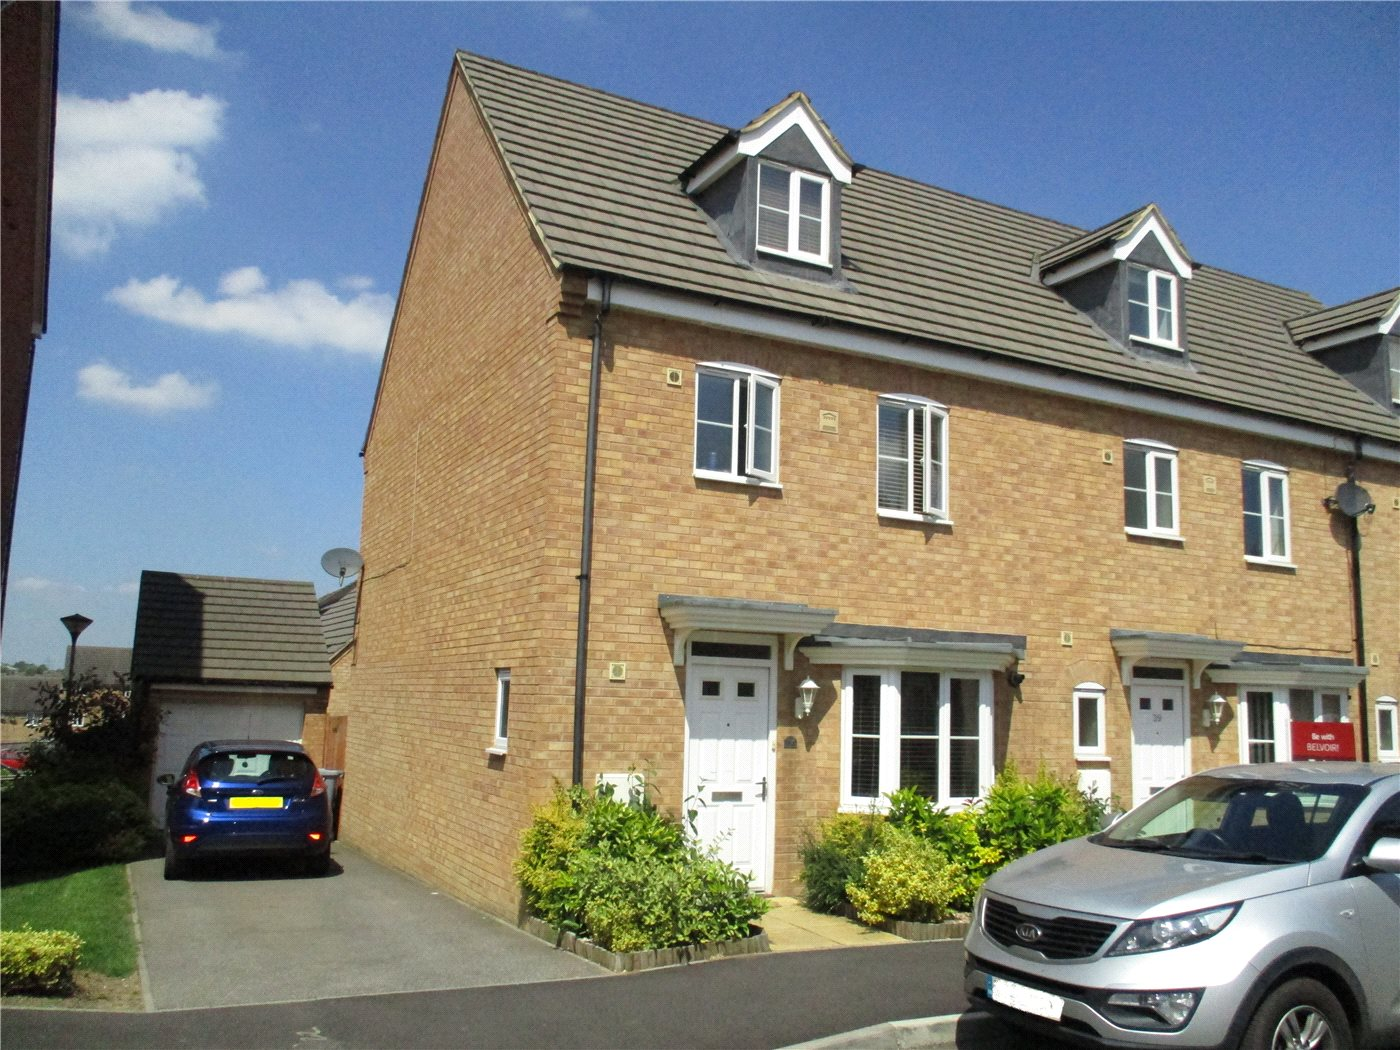 4 Bedrooms End Of Terrace House for sale in Scarsdale Way, Grantham, NG31